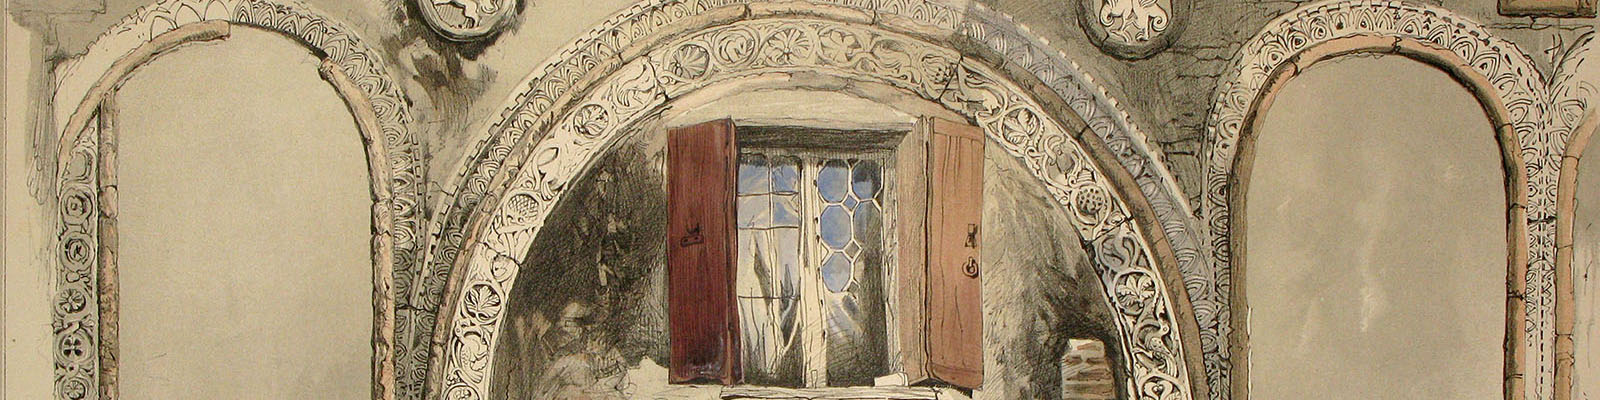 John Ruskin, page from Examples of Architecture